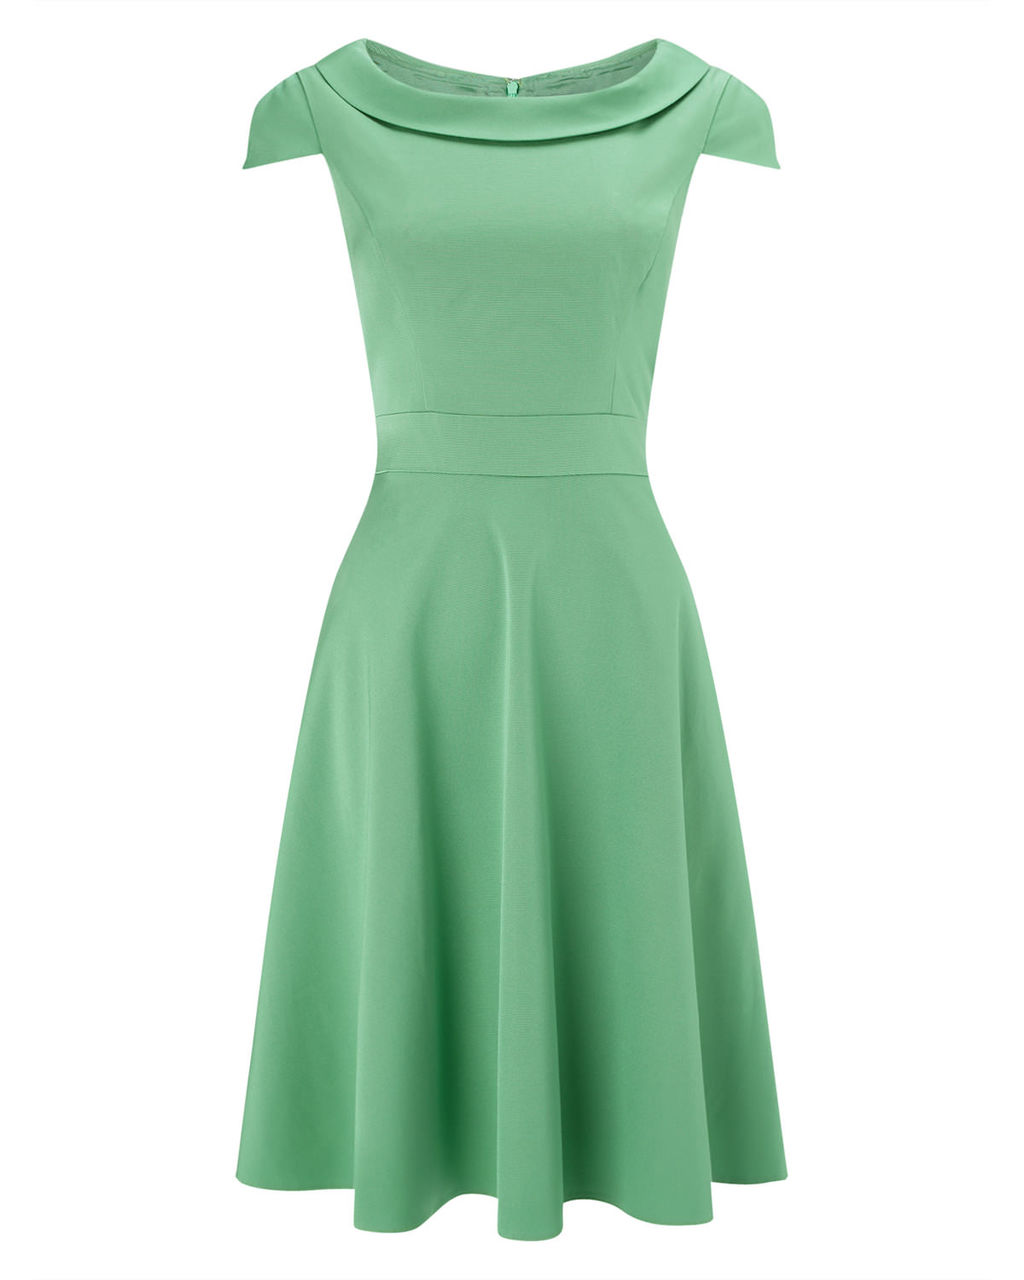 Nicola Fit And Flare Dress - neckline: slash/boat neckline; sleeve style: capped; pattern: plain; predominant colour: pistachio; occasions: evening, occasion; length: just above the knee; fit: fitted at waist & bust; style: fit & flare; fibres: cotton - mix; sleeve length: short sleeve; pattern type: fabric; texture group: jersey - stretchy/drapey; season: a/w 2015; wardrobe: event